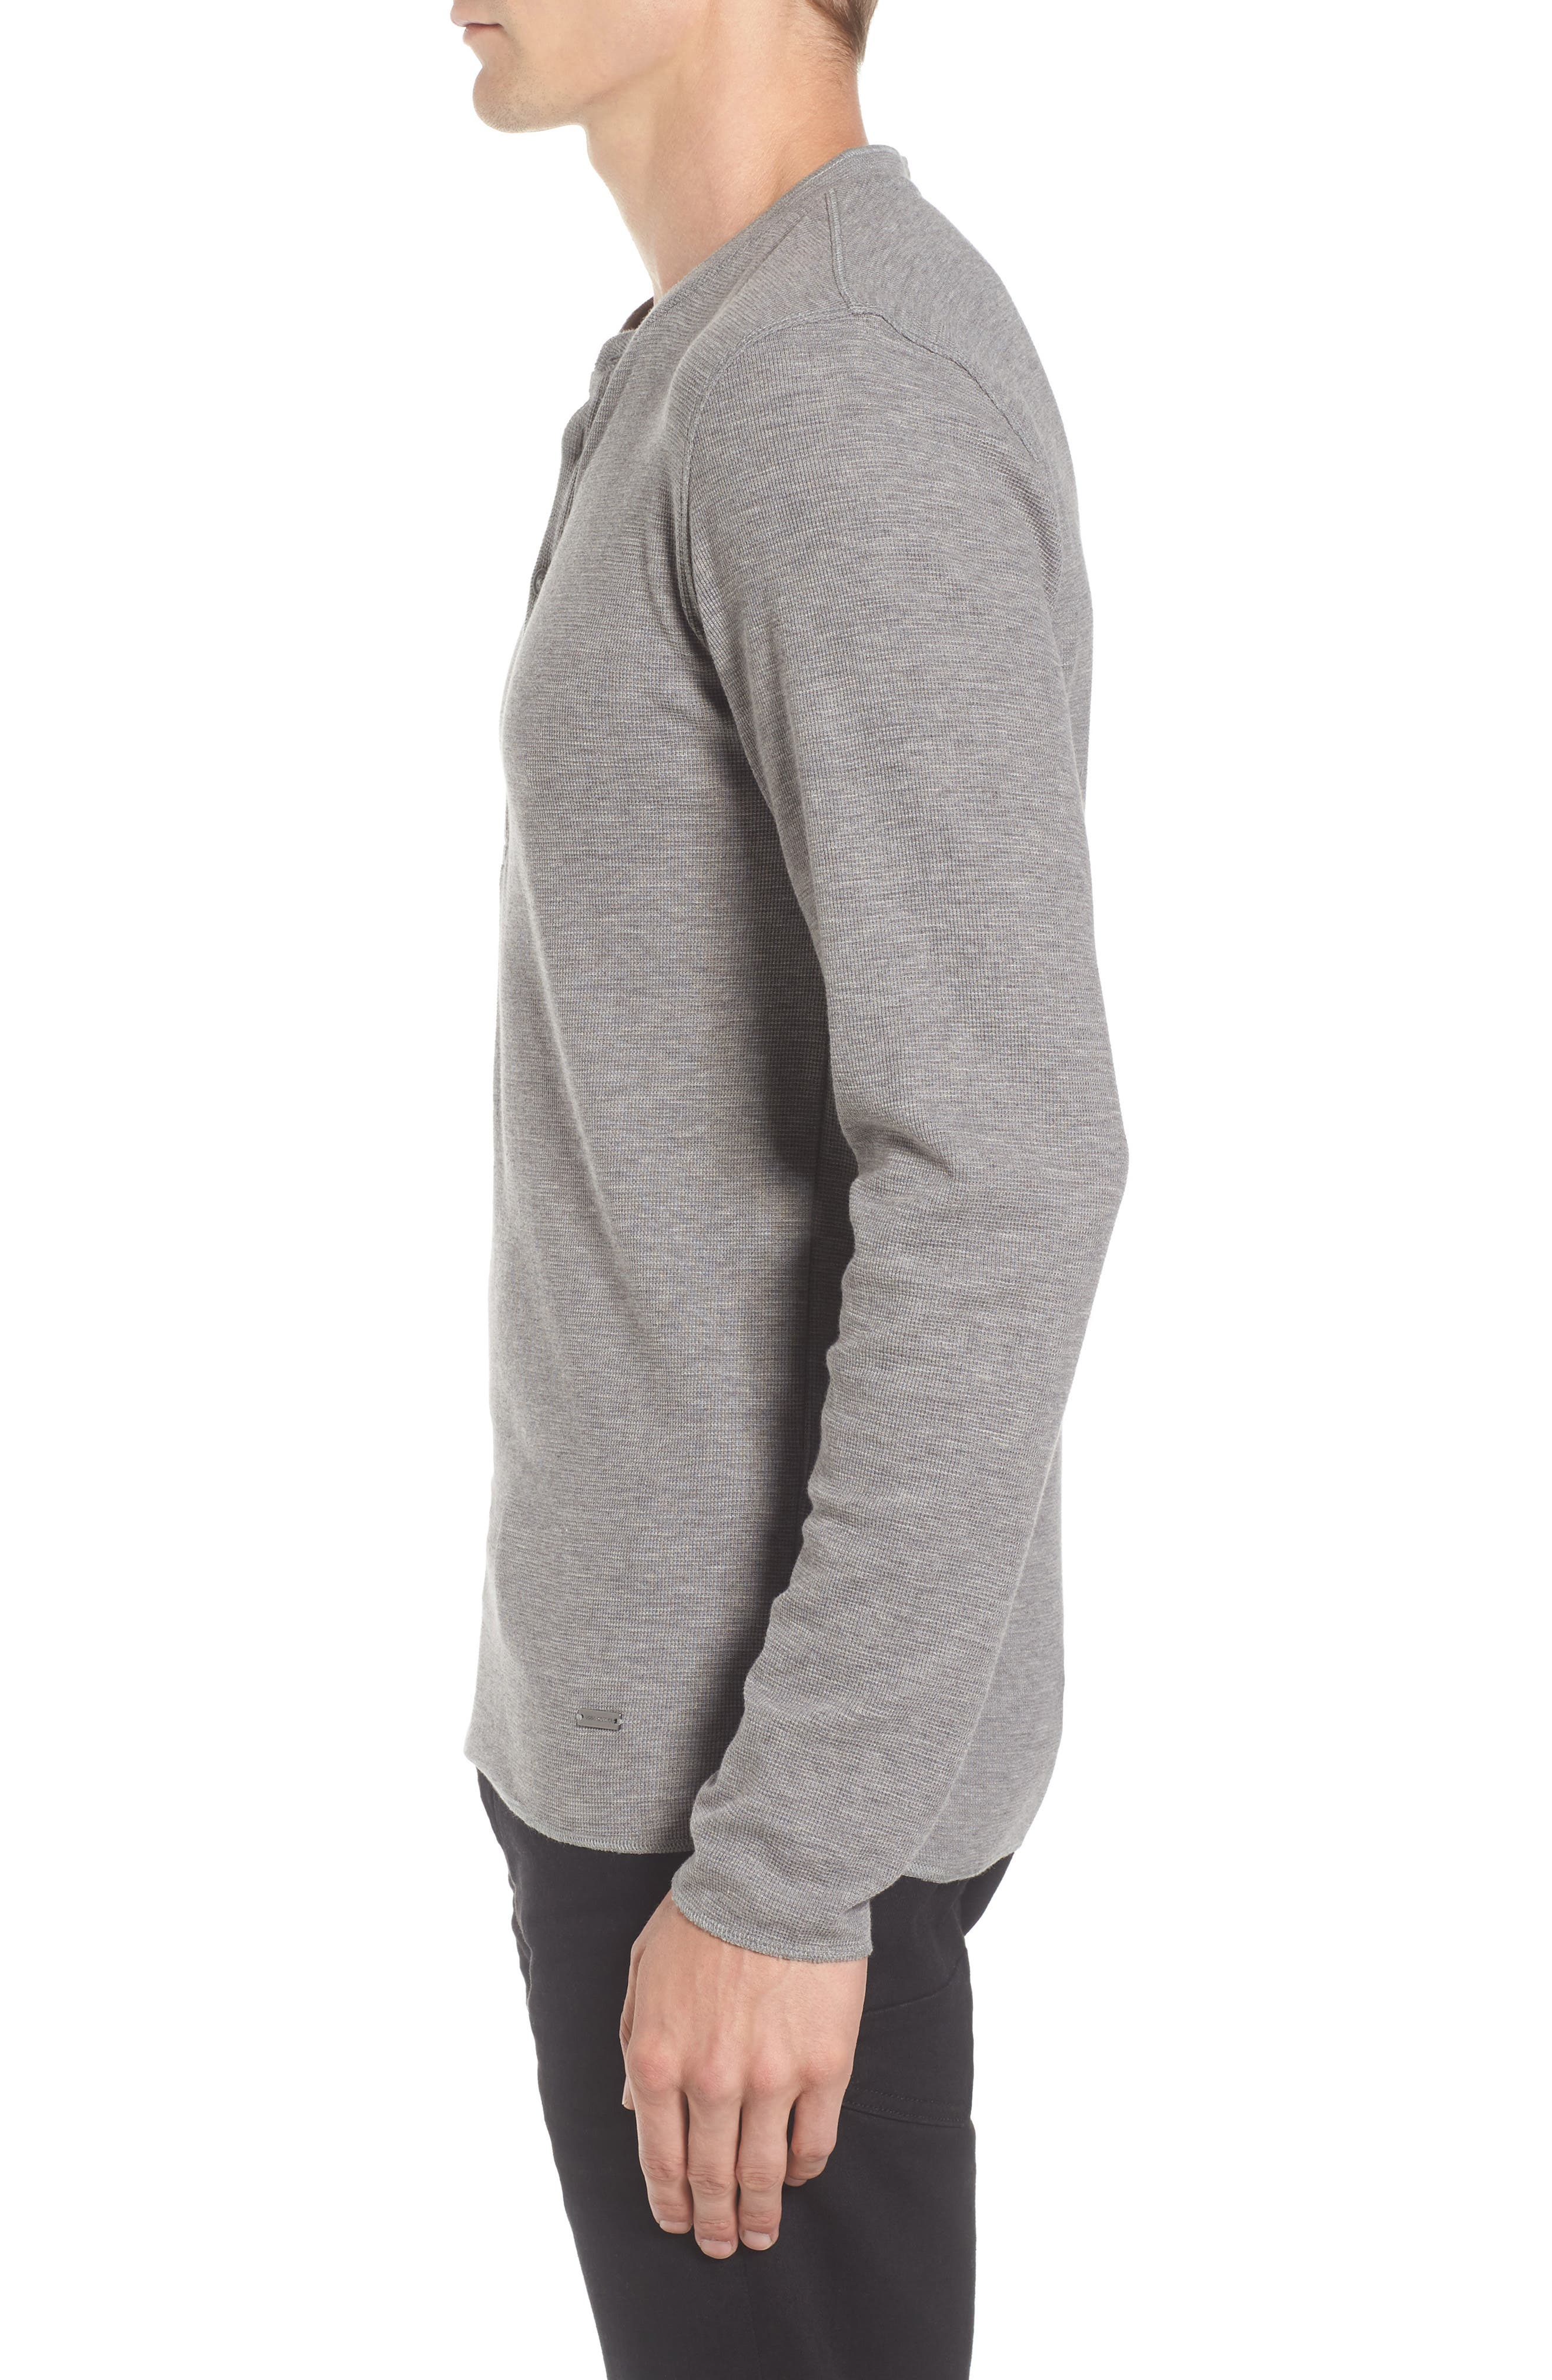 Topsider Thermal Henley,                             Alternate thumbnail 3, color,                             Light Pastel/ Grey